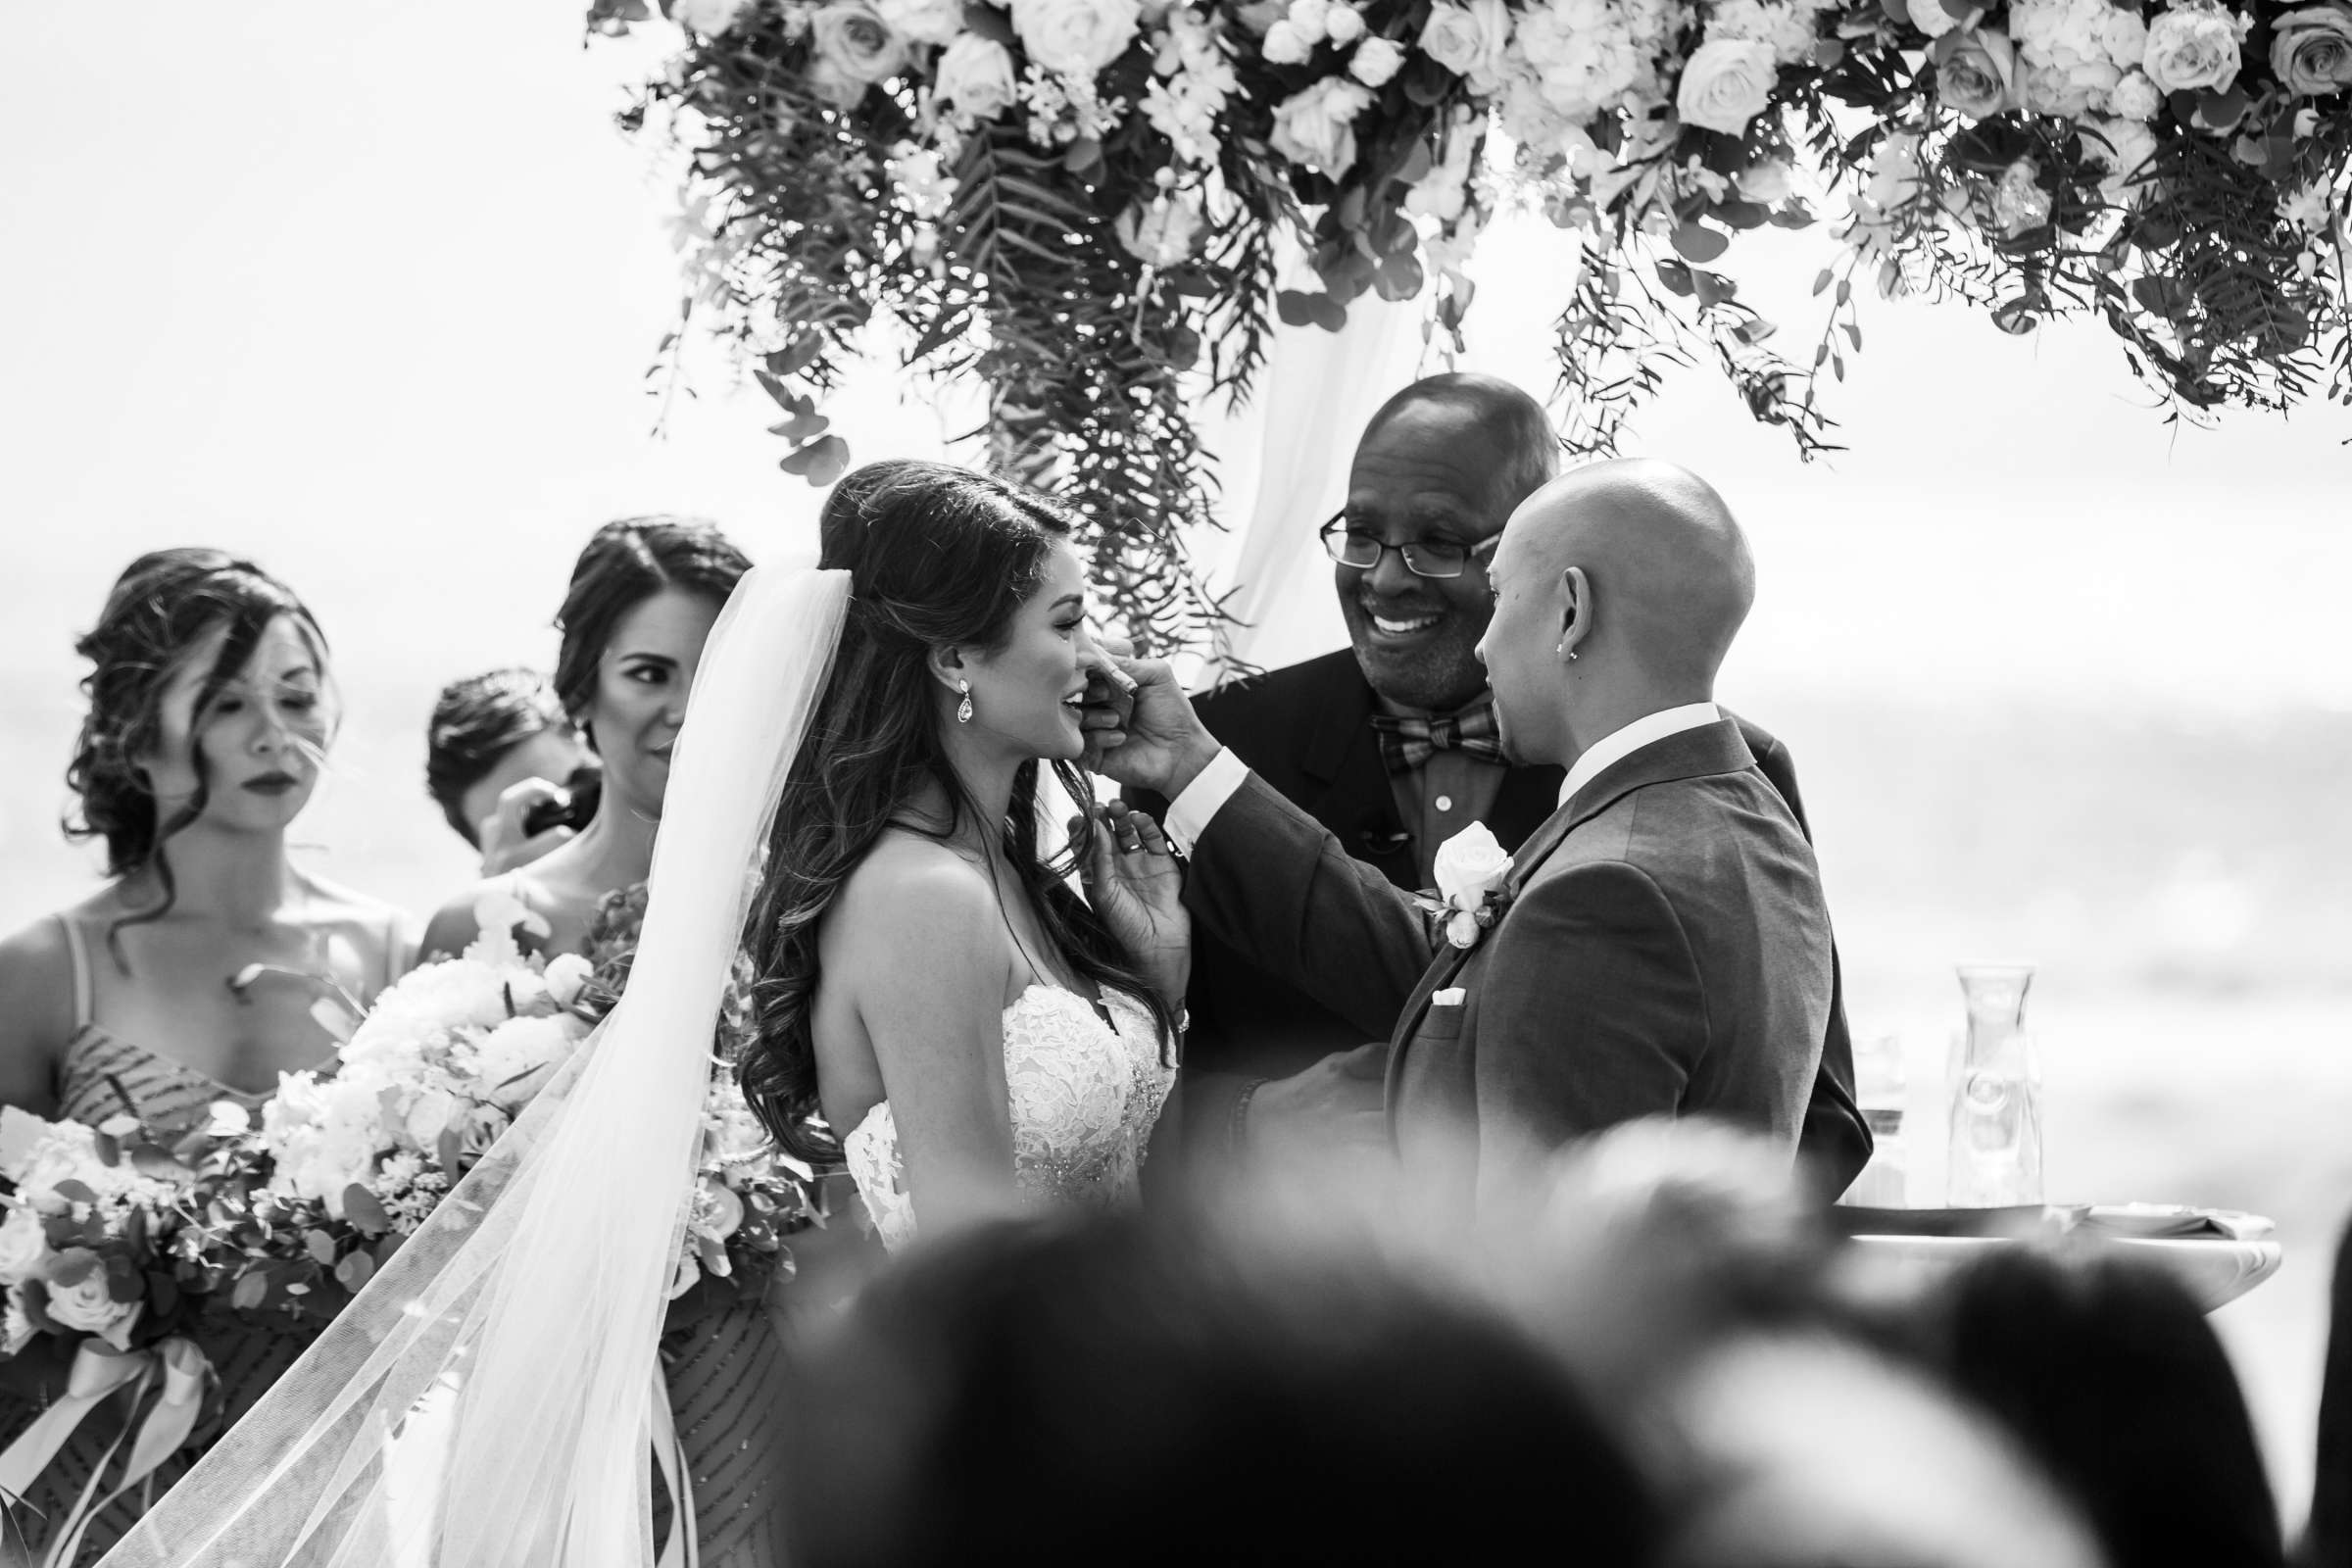 Scripps Seaside Forum Wedding coordinated by Lavish Weddings, Cindy and Justin Wedding Photo #381827 by True Photography